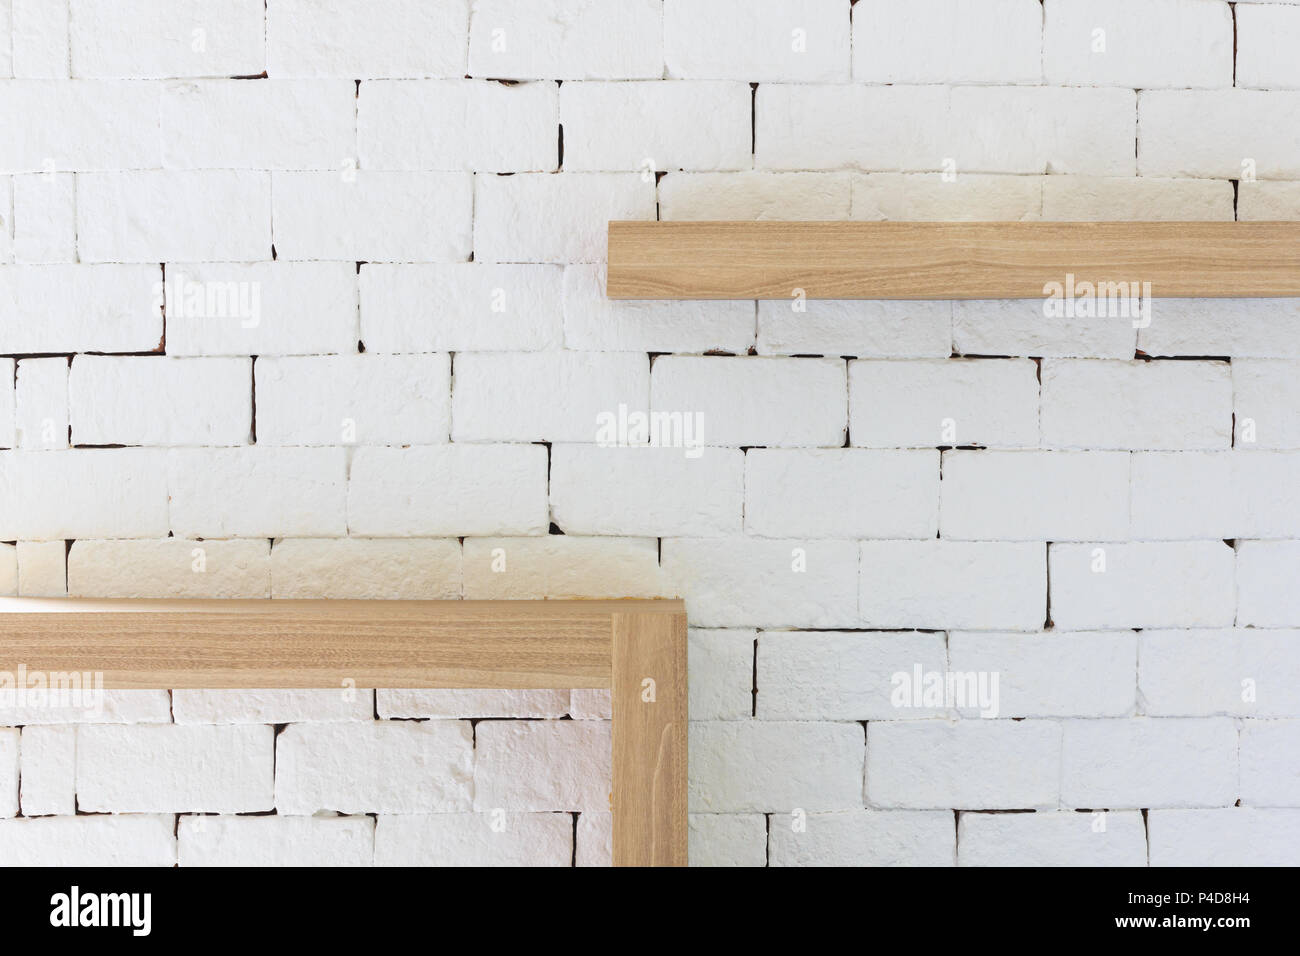 Brown wood frame on white brick background vintage furniture wooden frame hanging on white brick wall texture